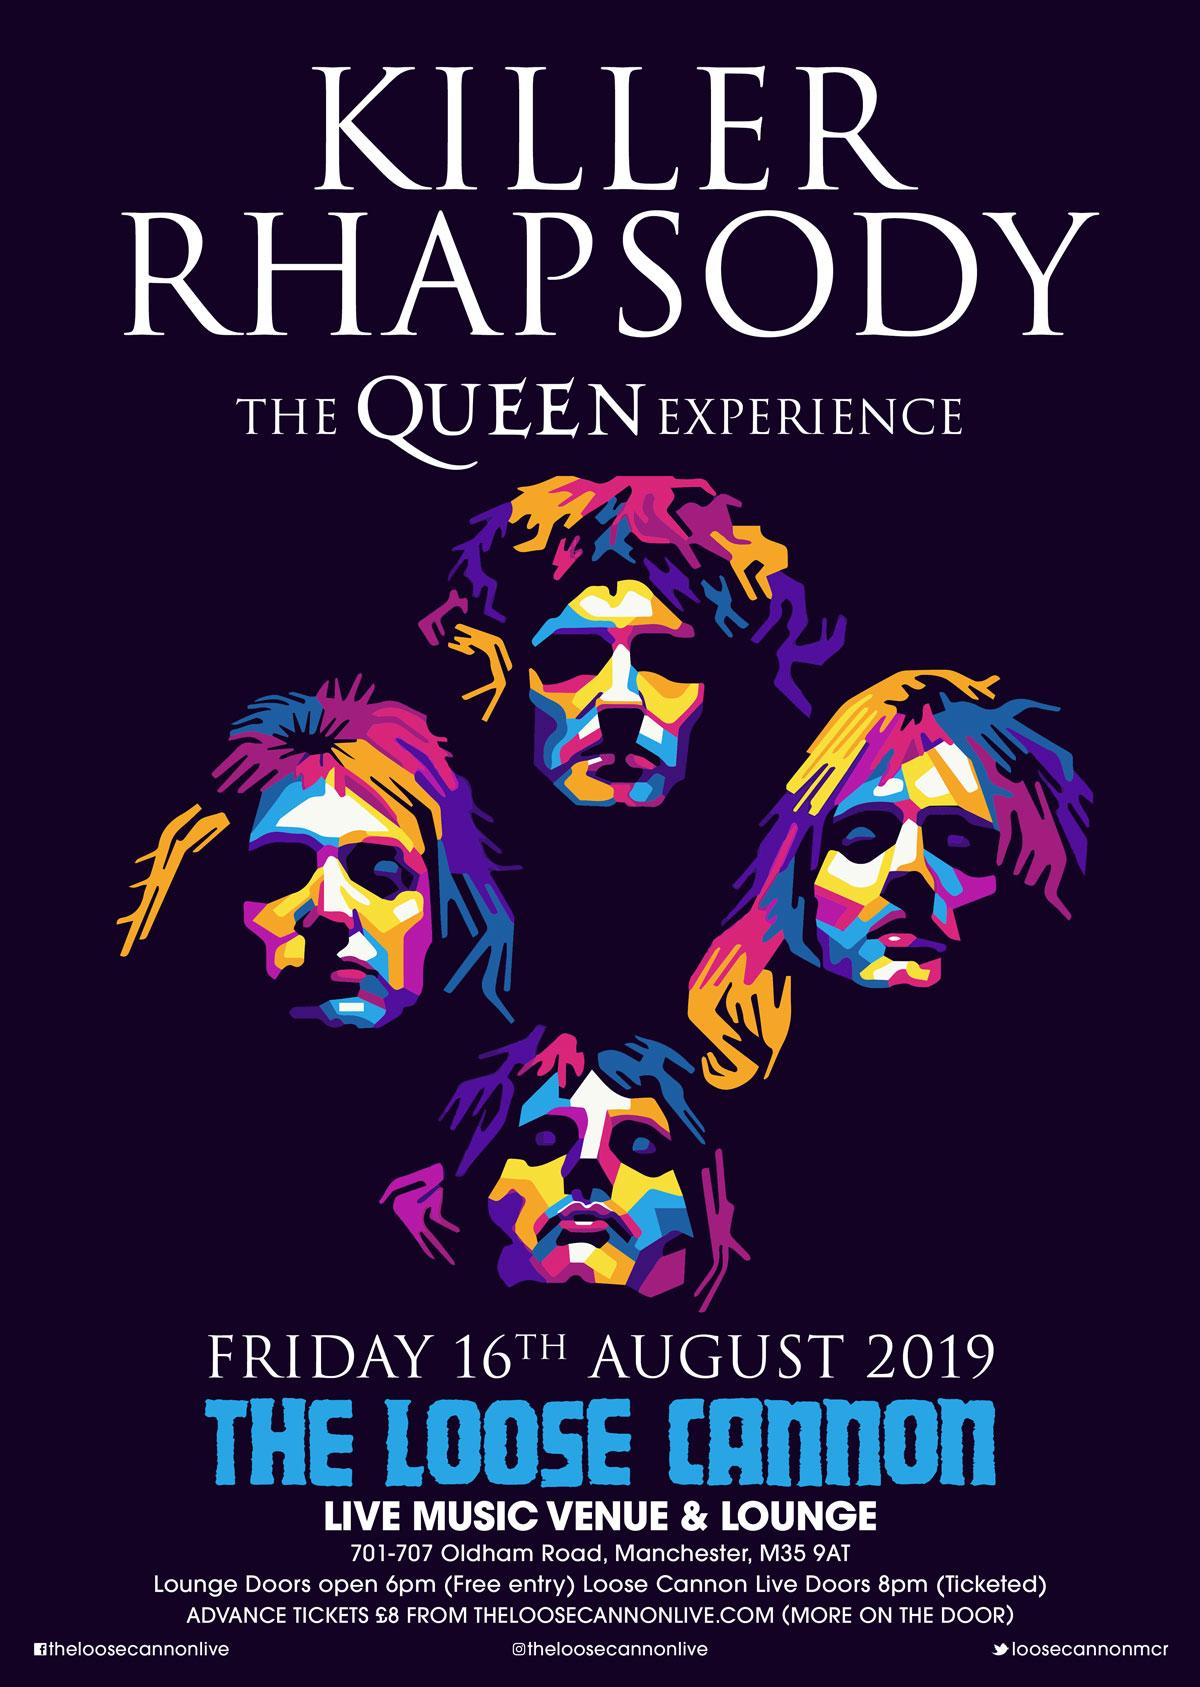 Killer Rhapsody -The Queen Experience at The Loose Cannon